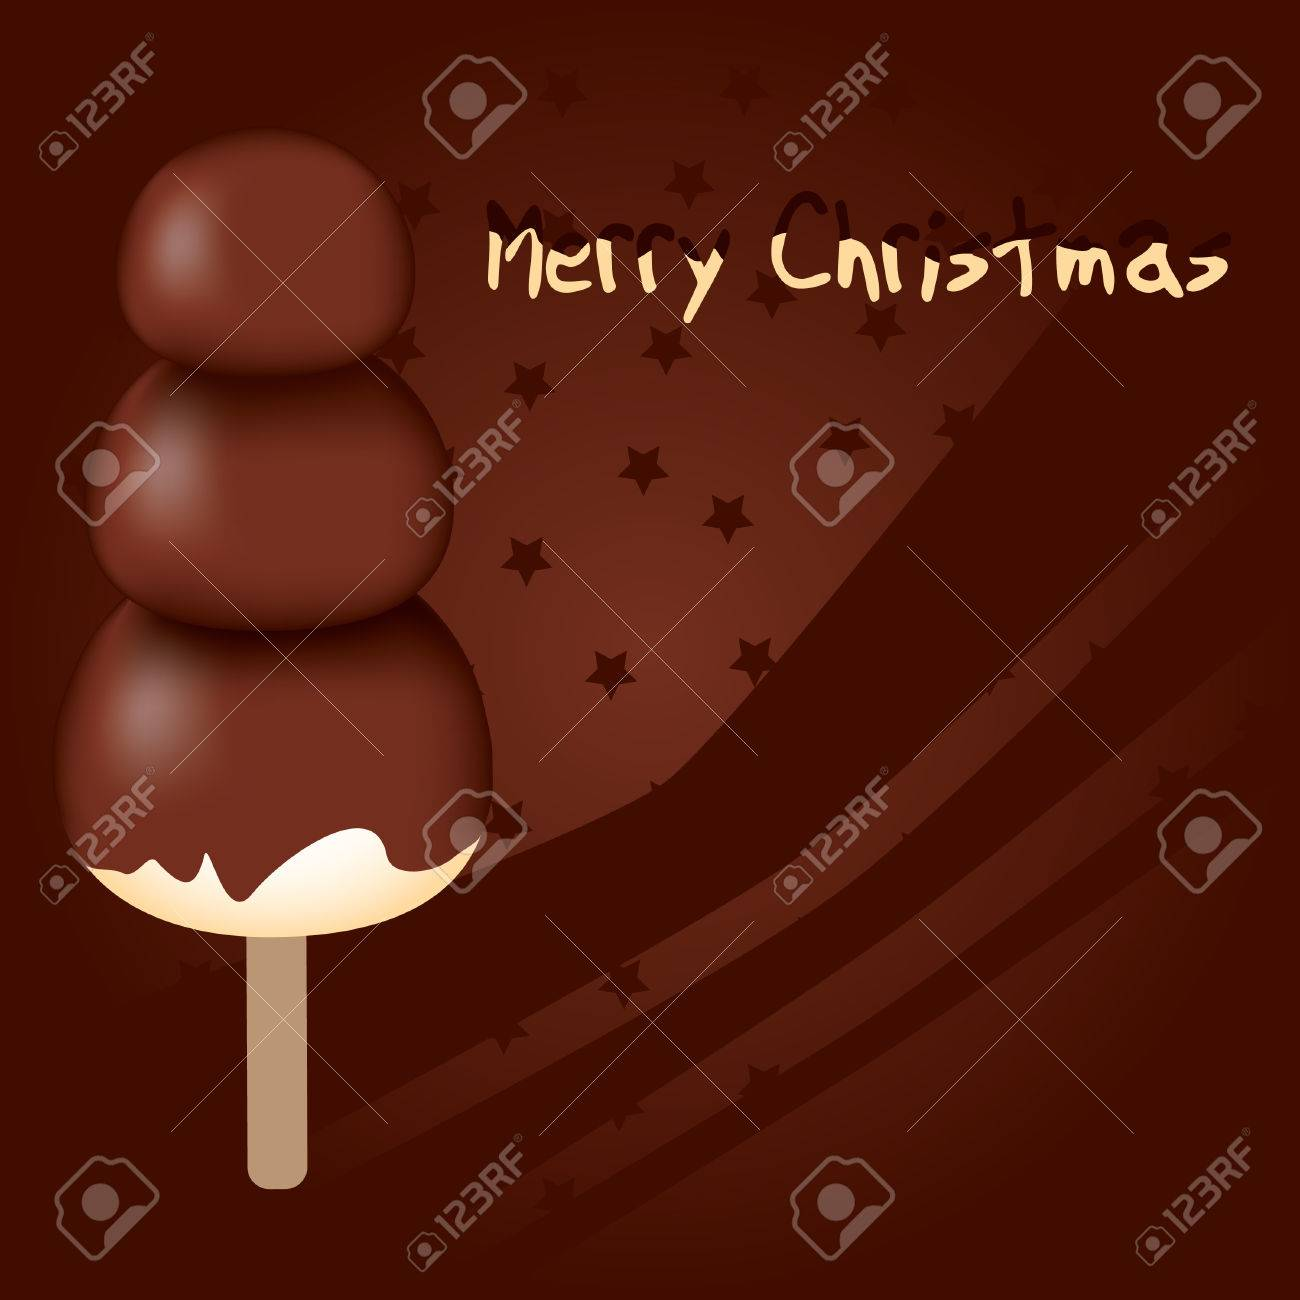 merry christmas - chocolate snowman on the brown background Stock Vector - 8183703